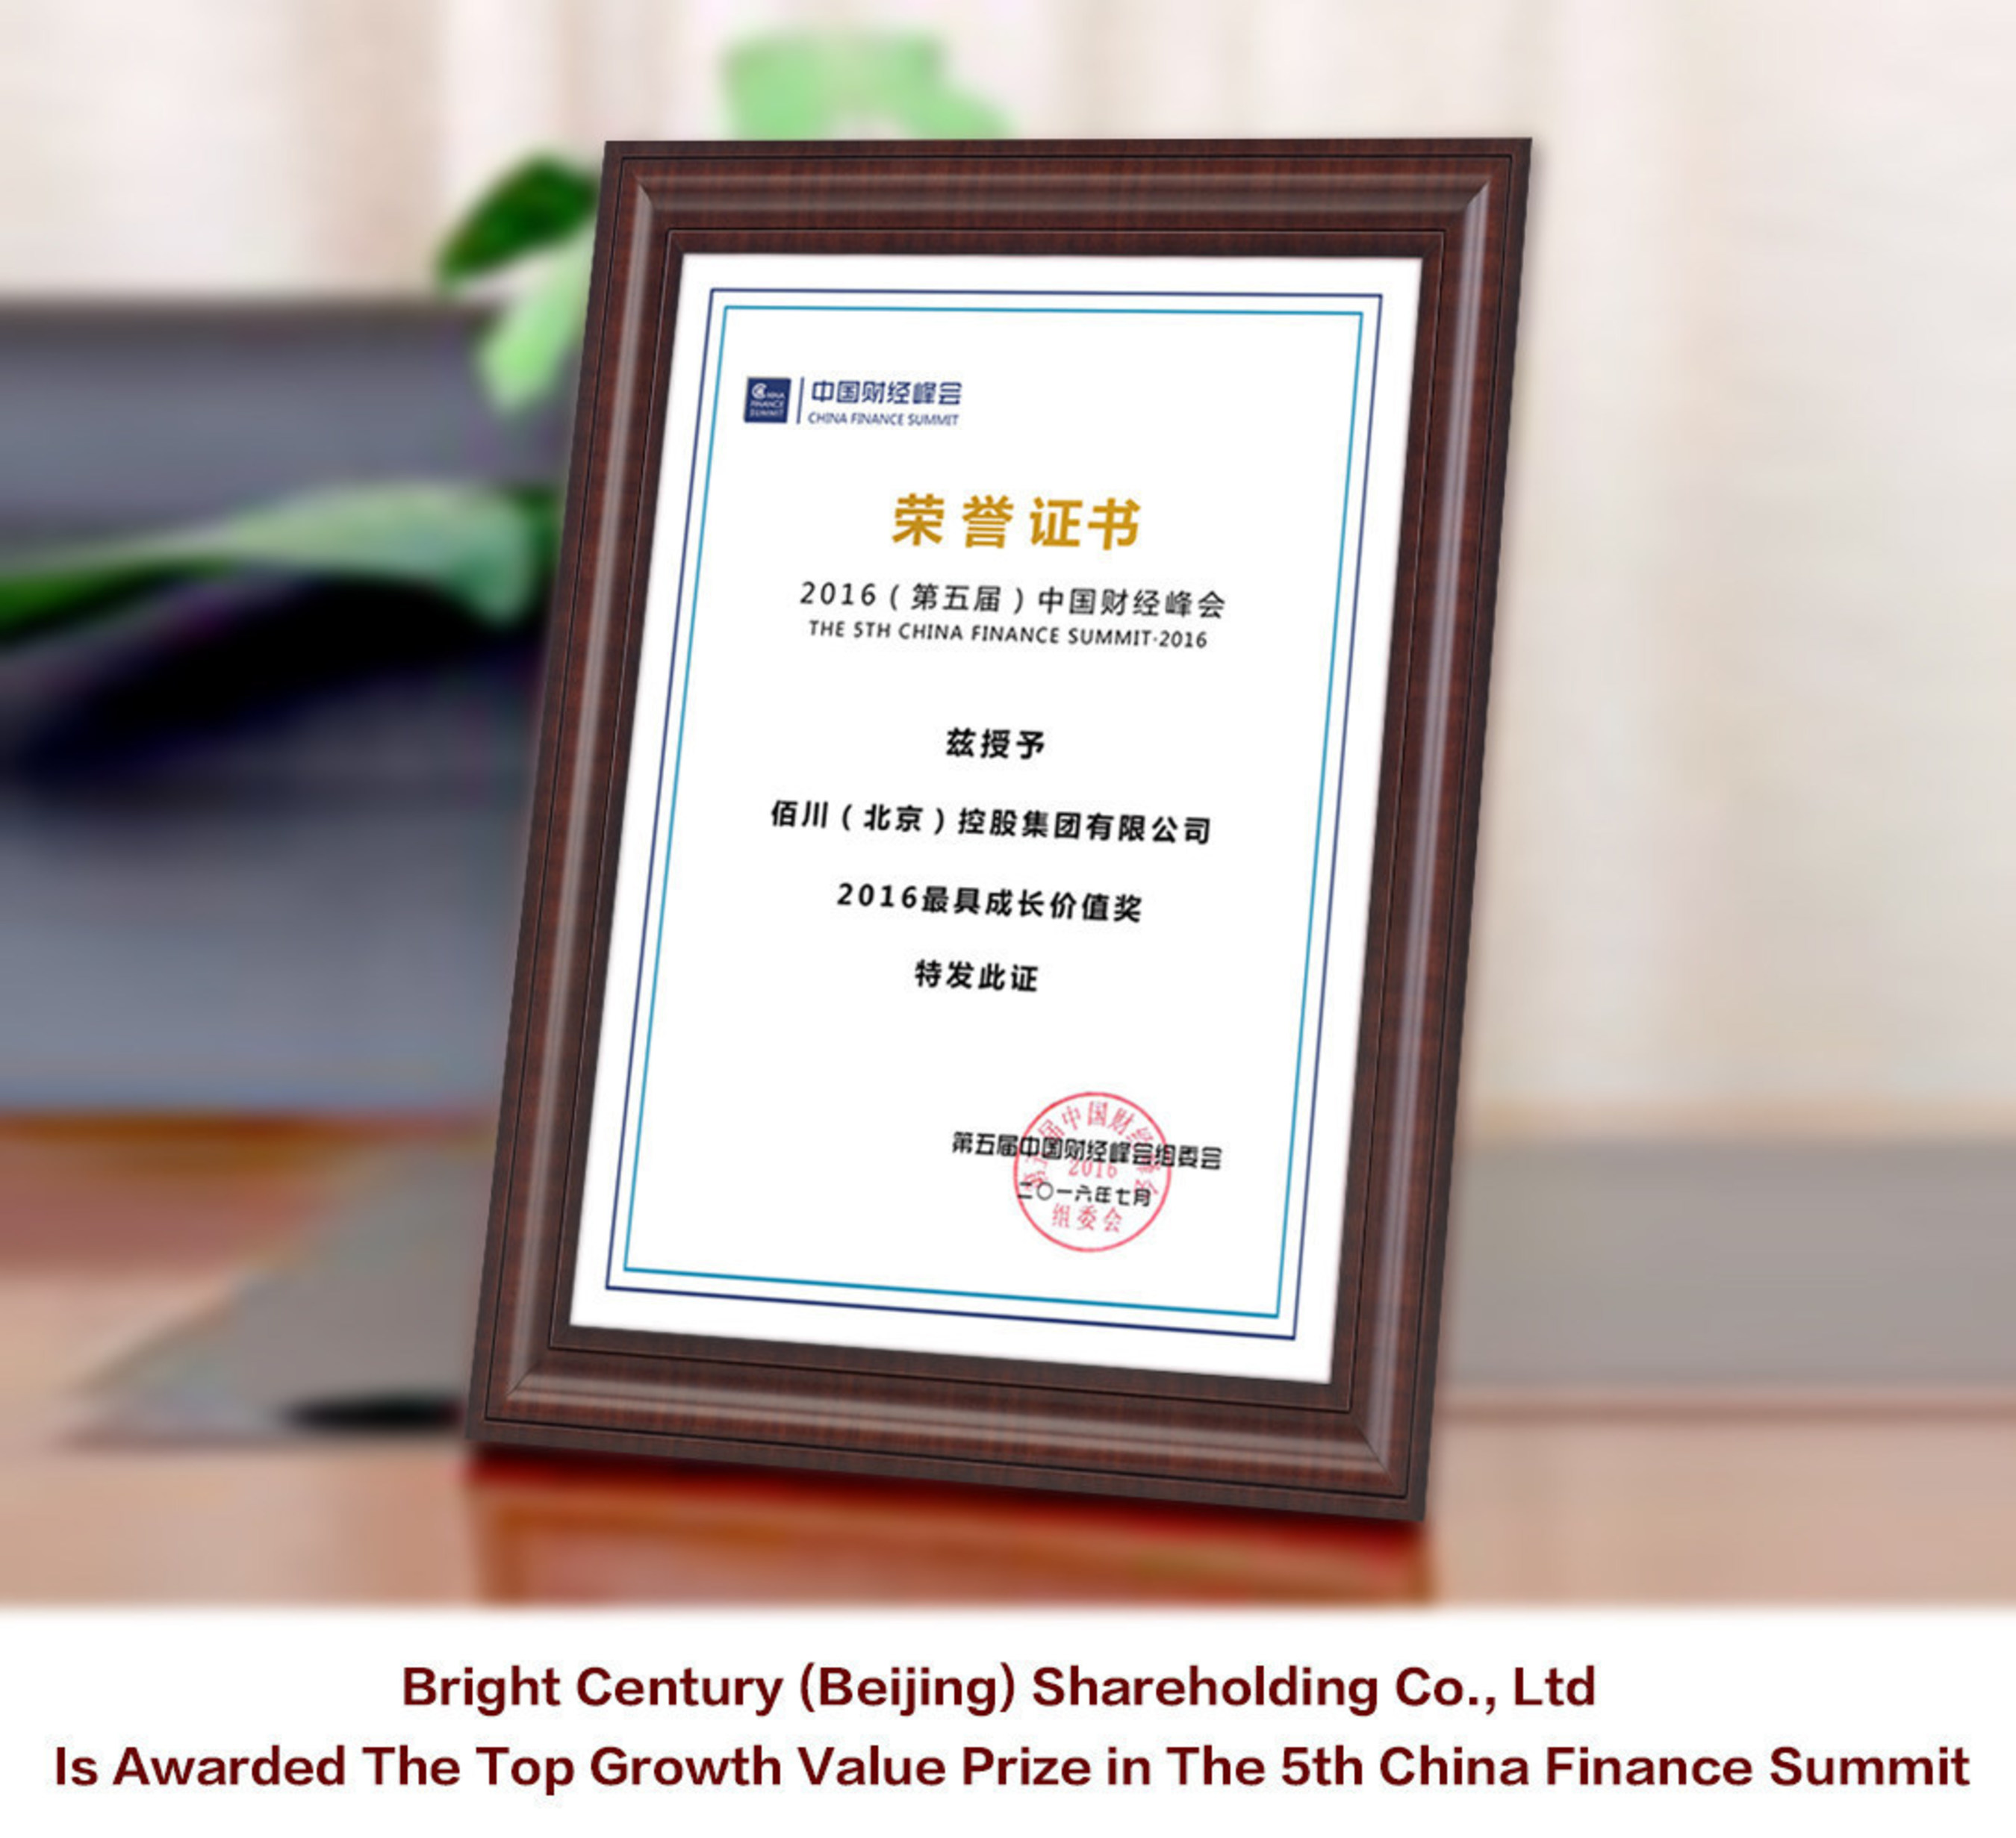 Bright Century (Beijing) Shareholding Co., Ltd Is Awarded The Top Growth Value Prize at The 5th China Finance Summit